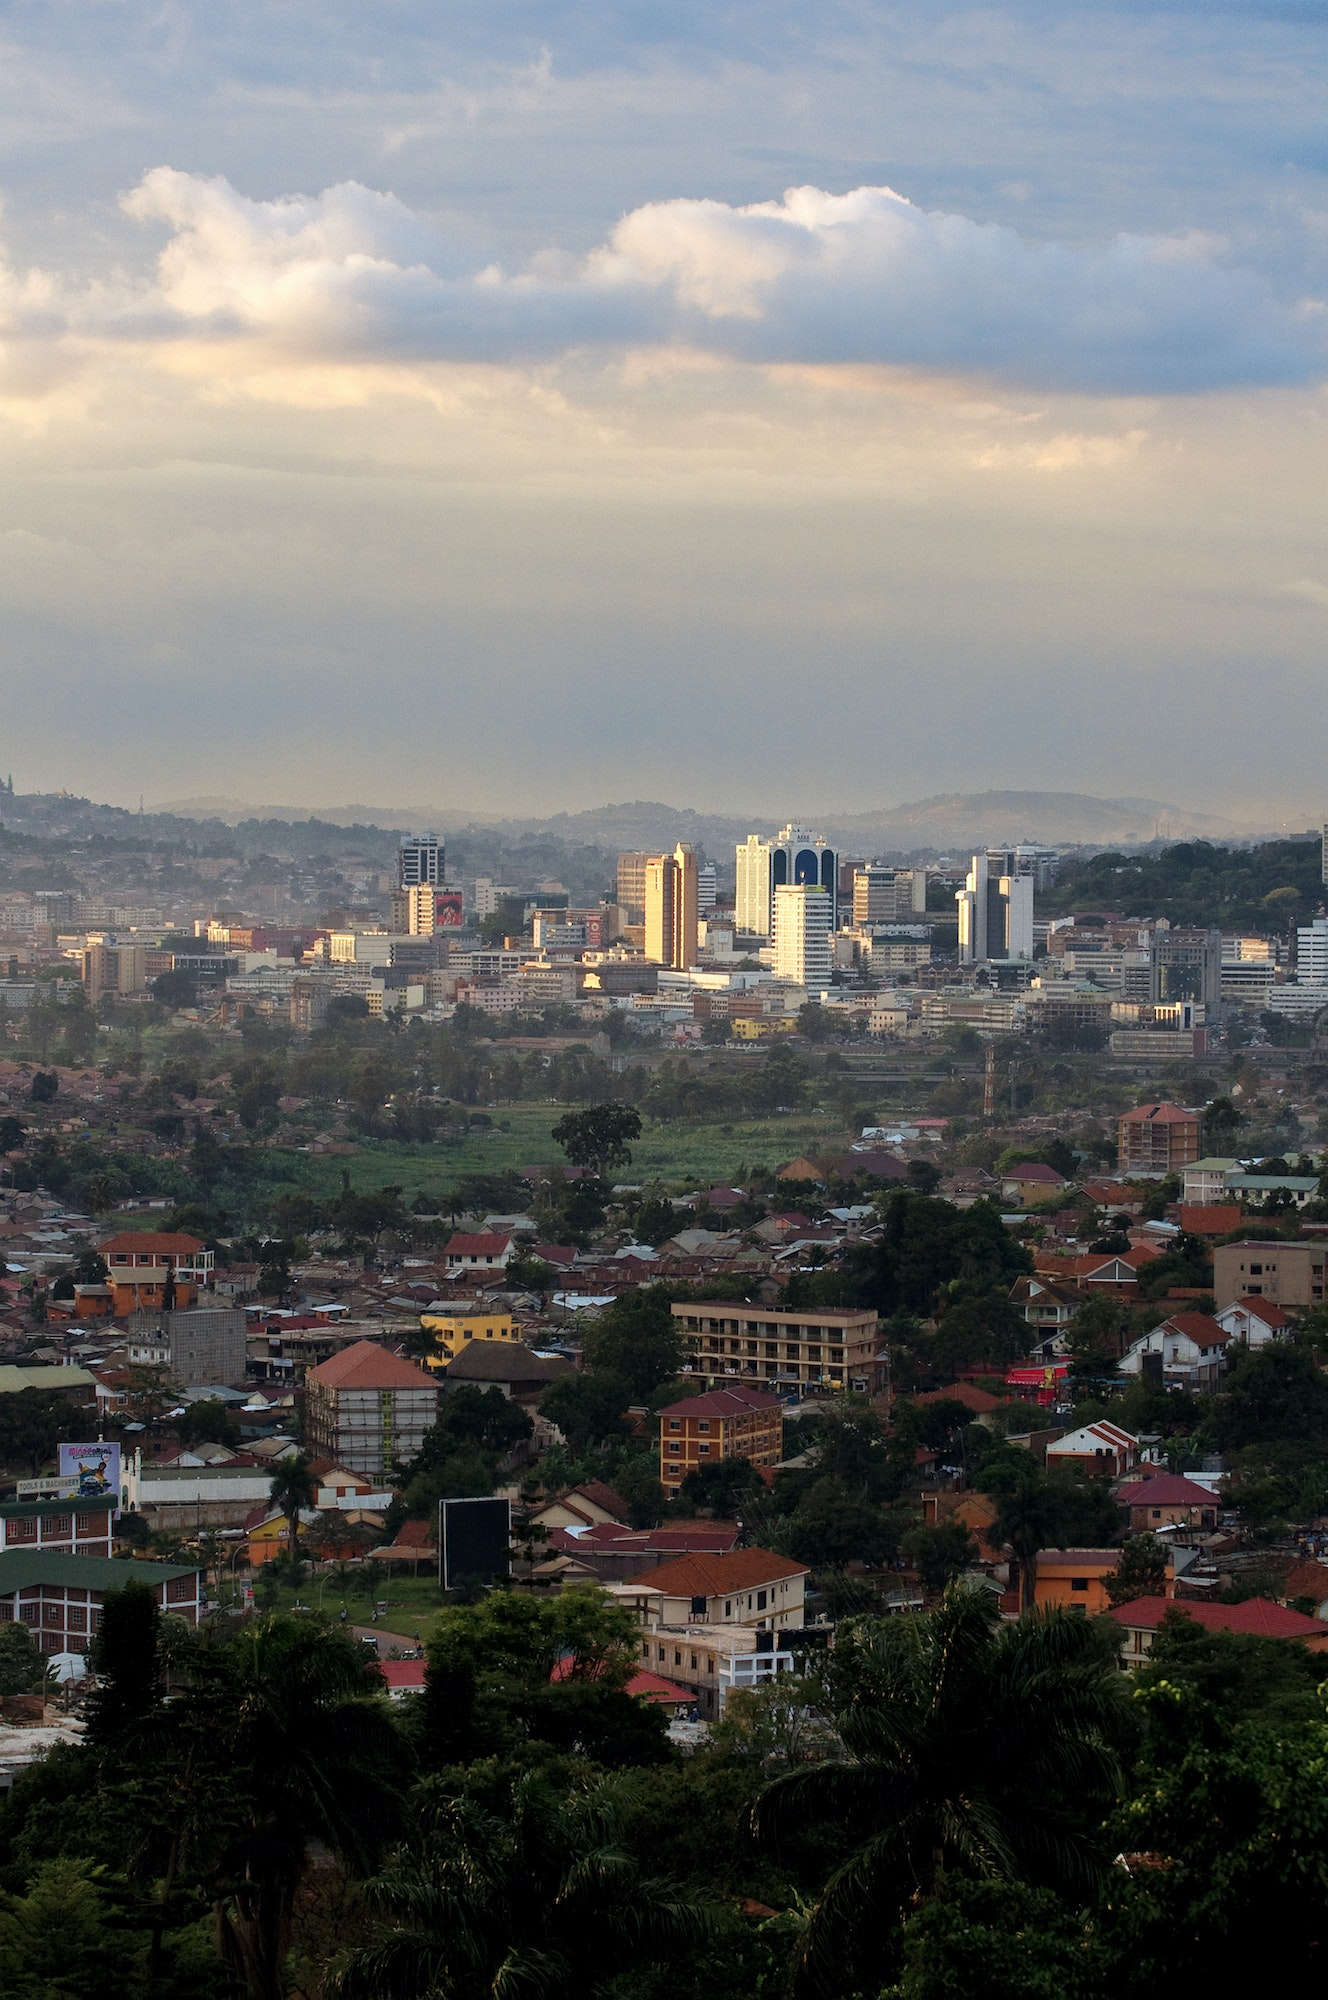 The view Uganda's capital city, Kampala, at sundown.